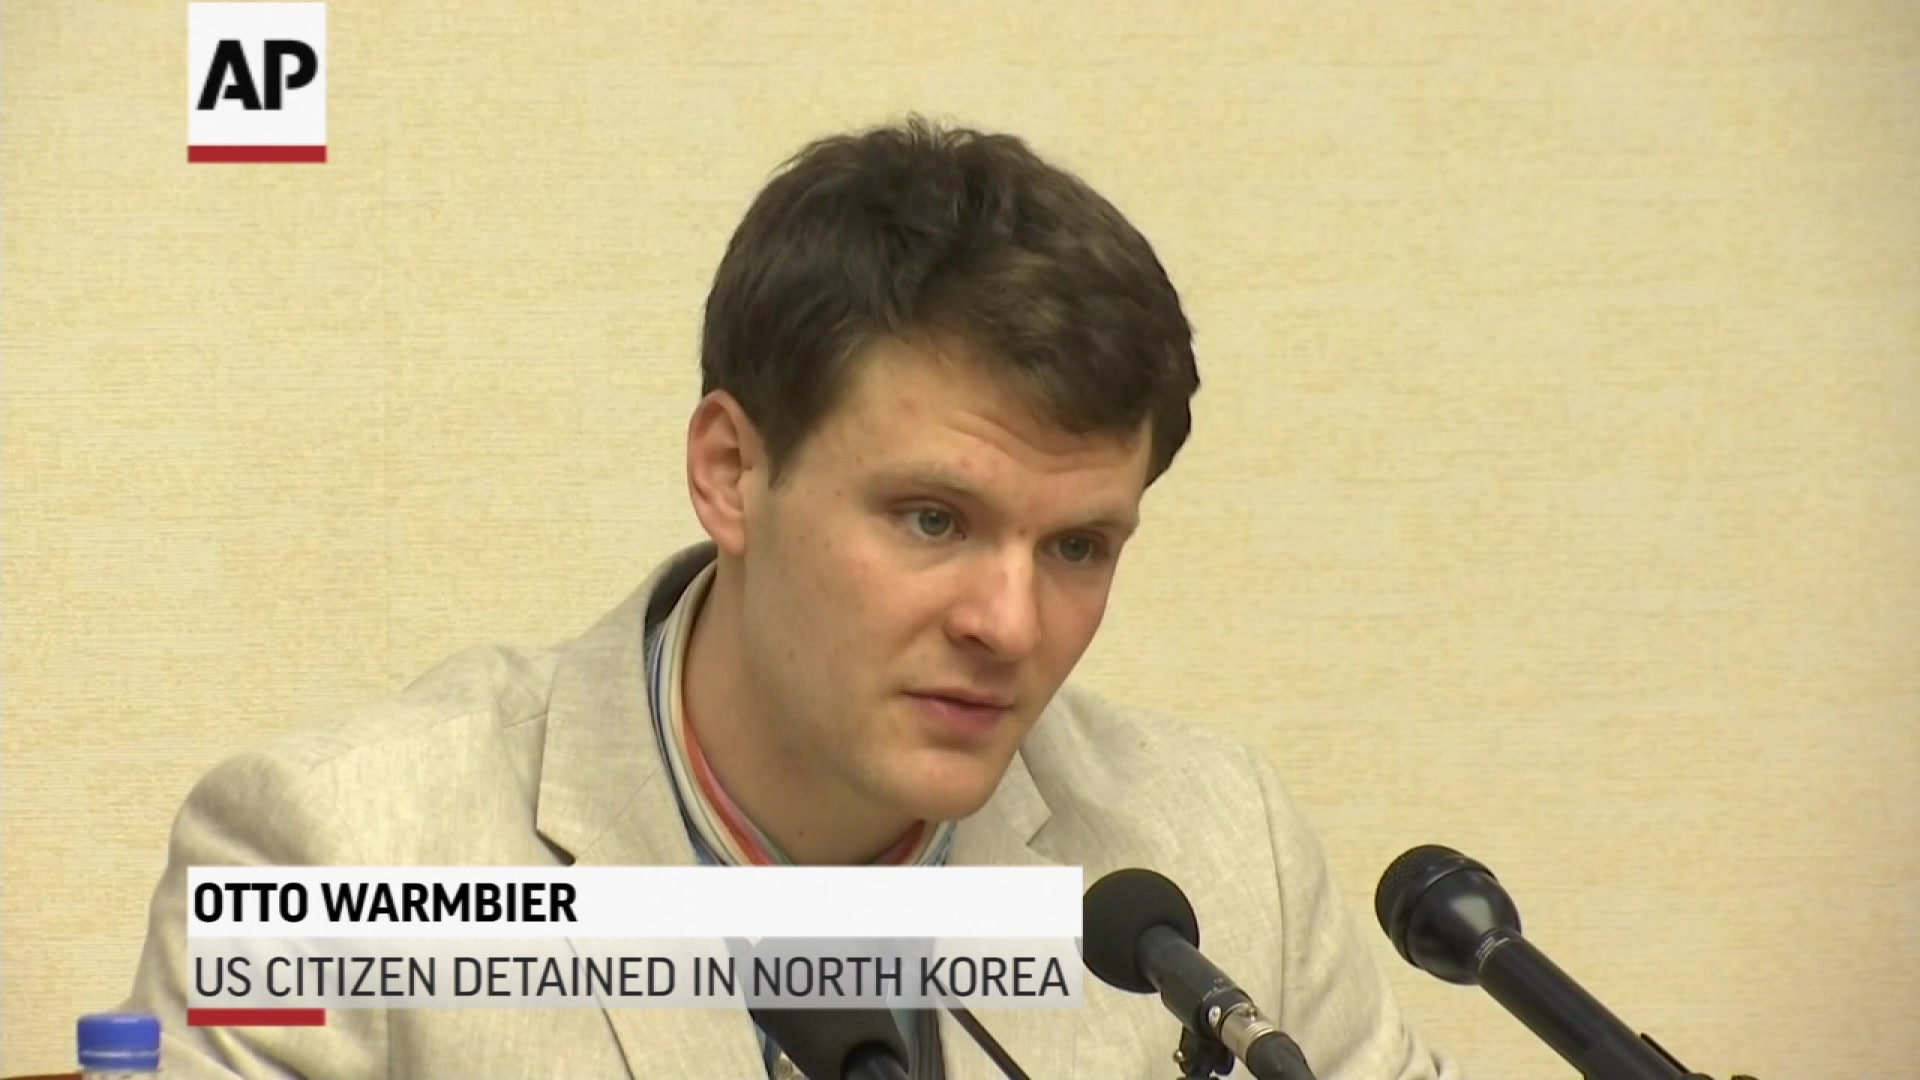 U.S. Student Held in North Korea Apologizes